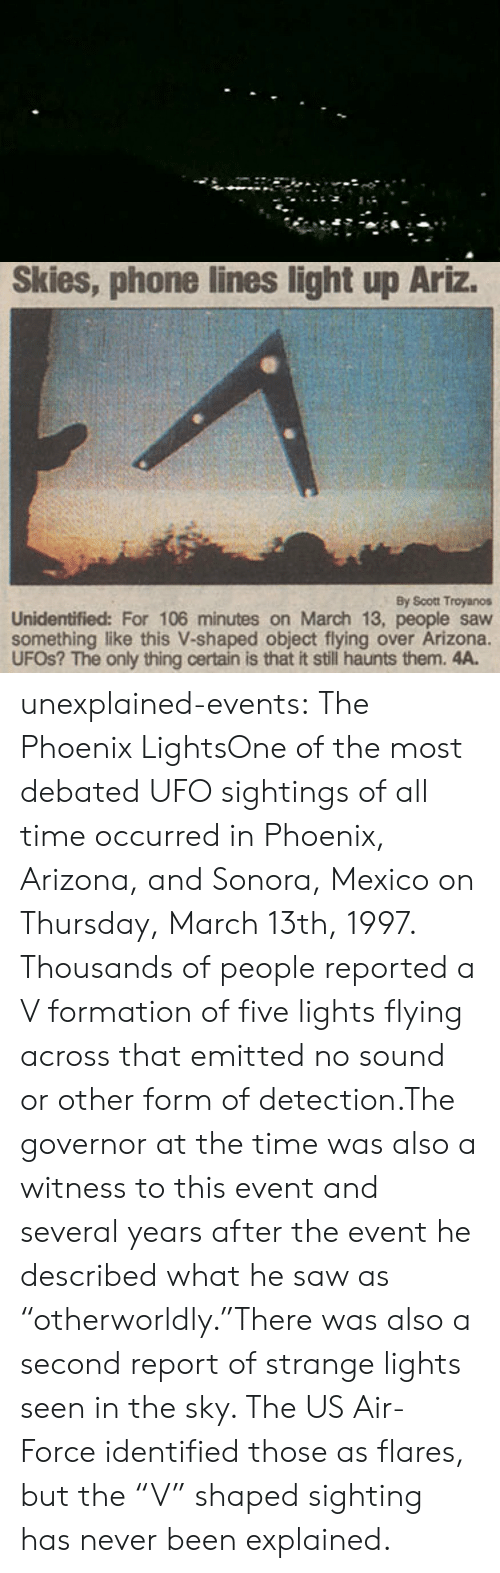 "Phone, Saw, and Target: Skies, phone lines light up Ariz.  By Scott Troyanos  Unidentified: For 106 minutes on March 13, people saw  something like this V-shaped object flying over Arizona.  UFOS? The only thing certain is that it still haunts them. 4A. unexplained-events:  The Phoenix LightsOne of the most debated UFO sightings of all time occurred in Phoenix, Arizona, and Sonora, Mexico on Thursday, March 13th, 1997. Thousands of people reported a V formation of five lights flying across that emitted no sound or other form of detection.The governor at the time was also a witness to this event and several years after the event he described what he saw as   ""otherworldly.""There was also a second report of strange lights seen in the sky. The US Air-Force identified those as flares, but the ""V"" shaped sighting has never been explained."